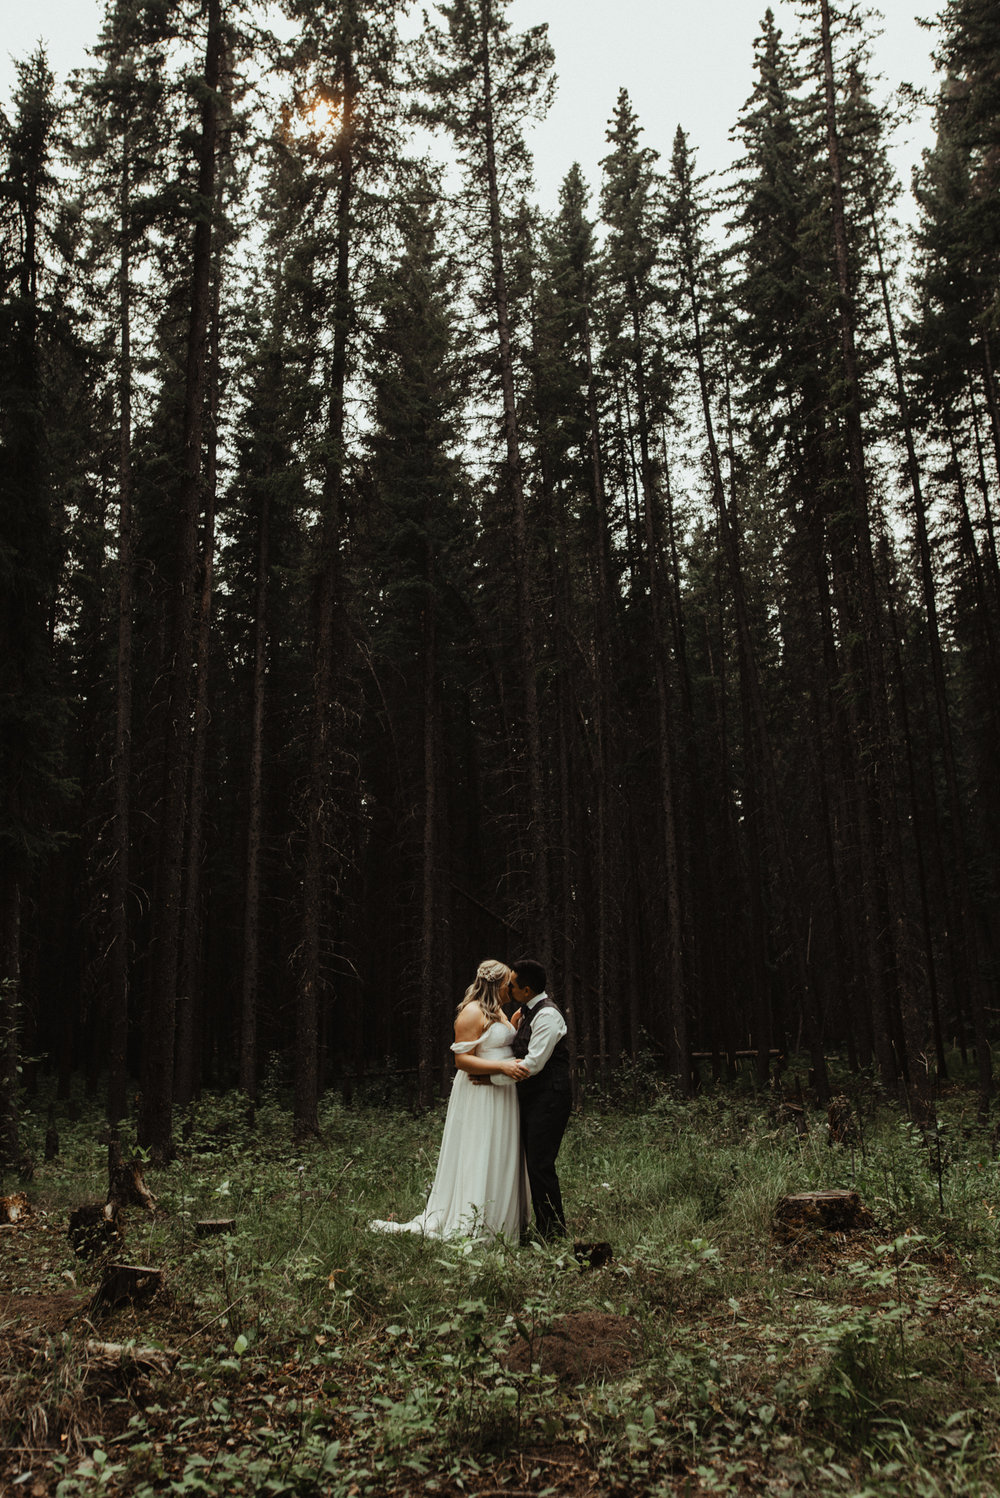 W+J - Calgary Wedding Photographer - Ghost Lake - Rocky Mountain Wedding-95.jpg